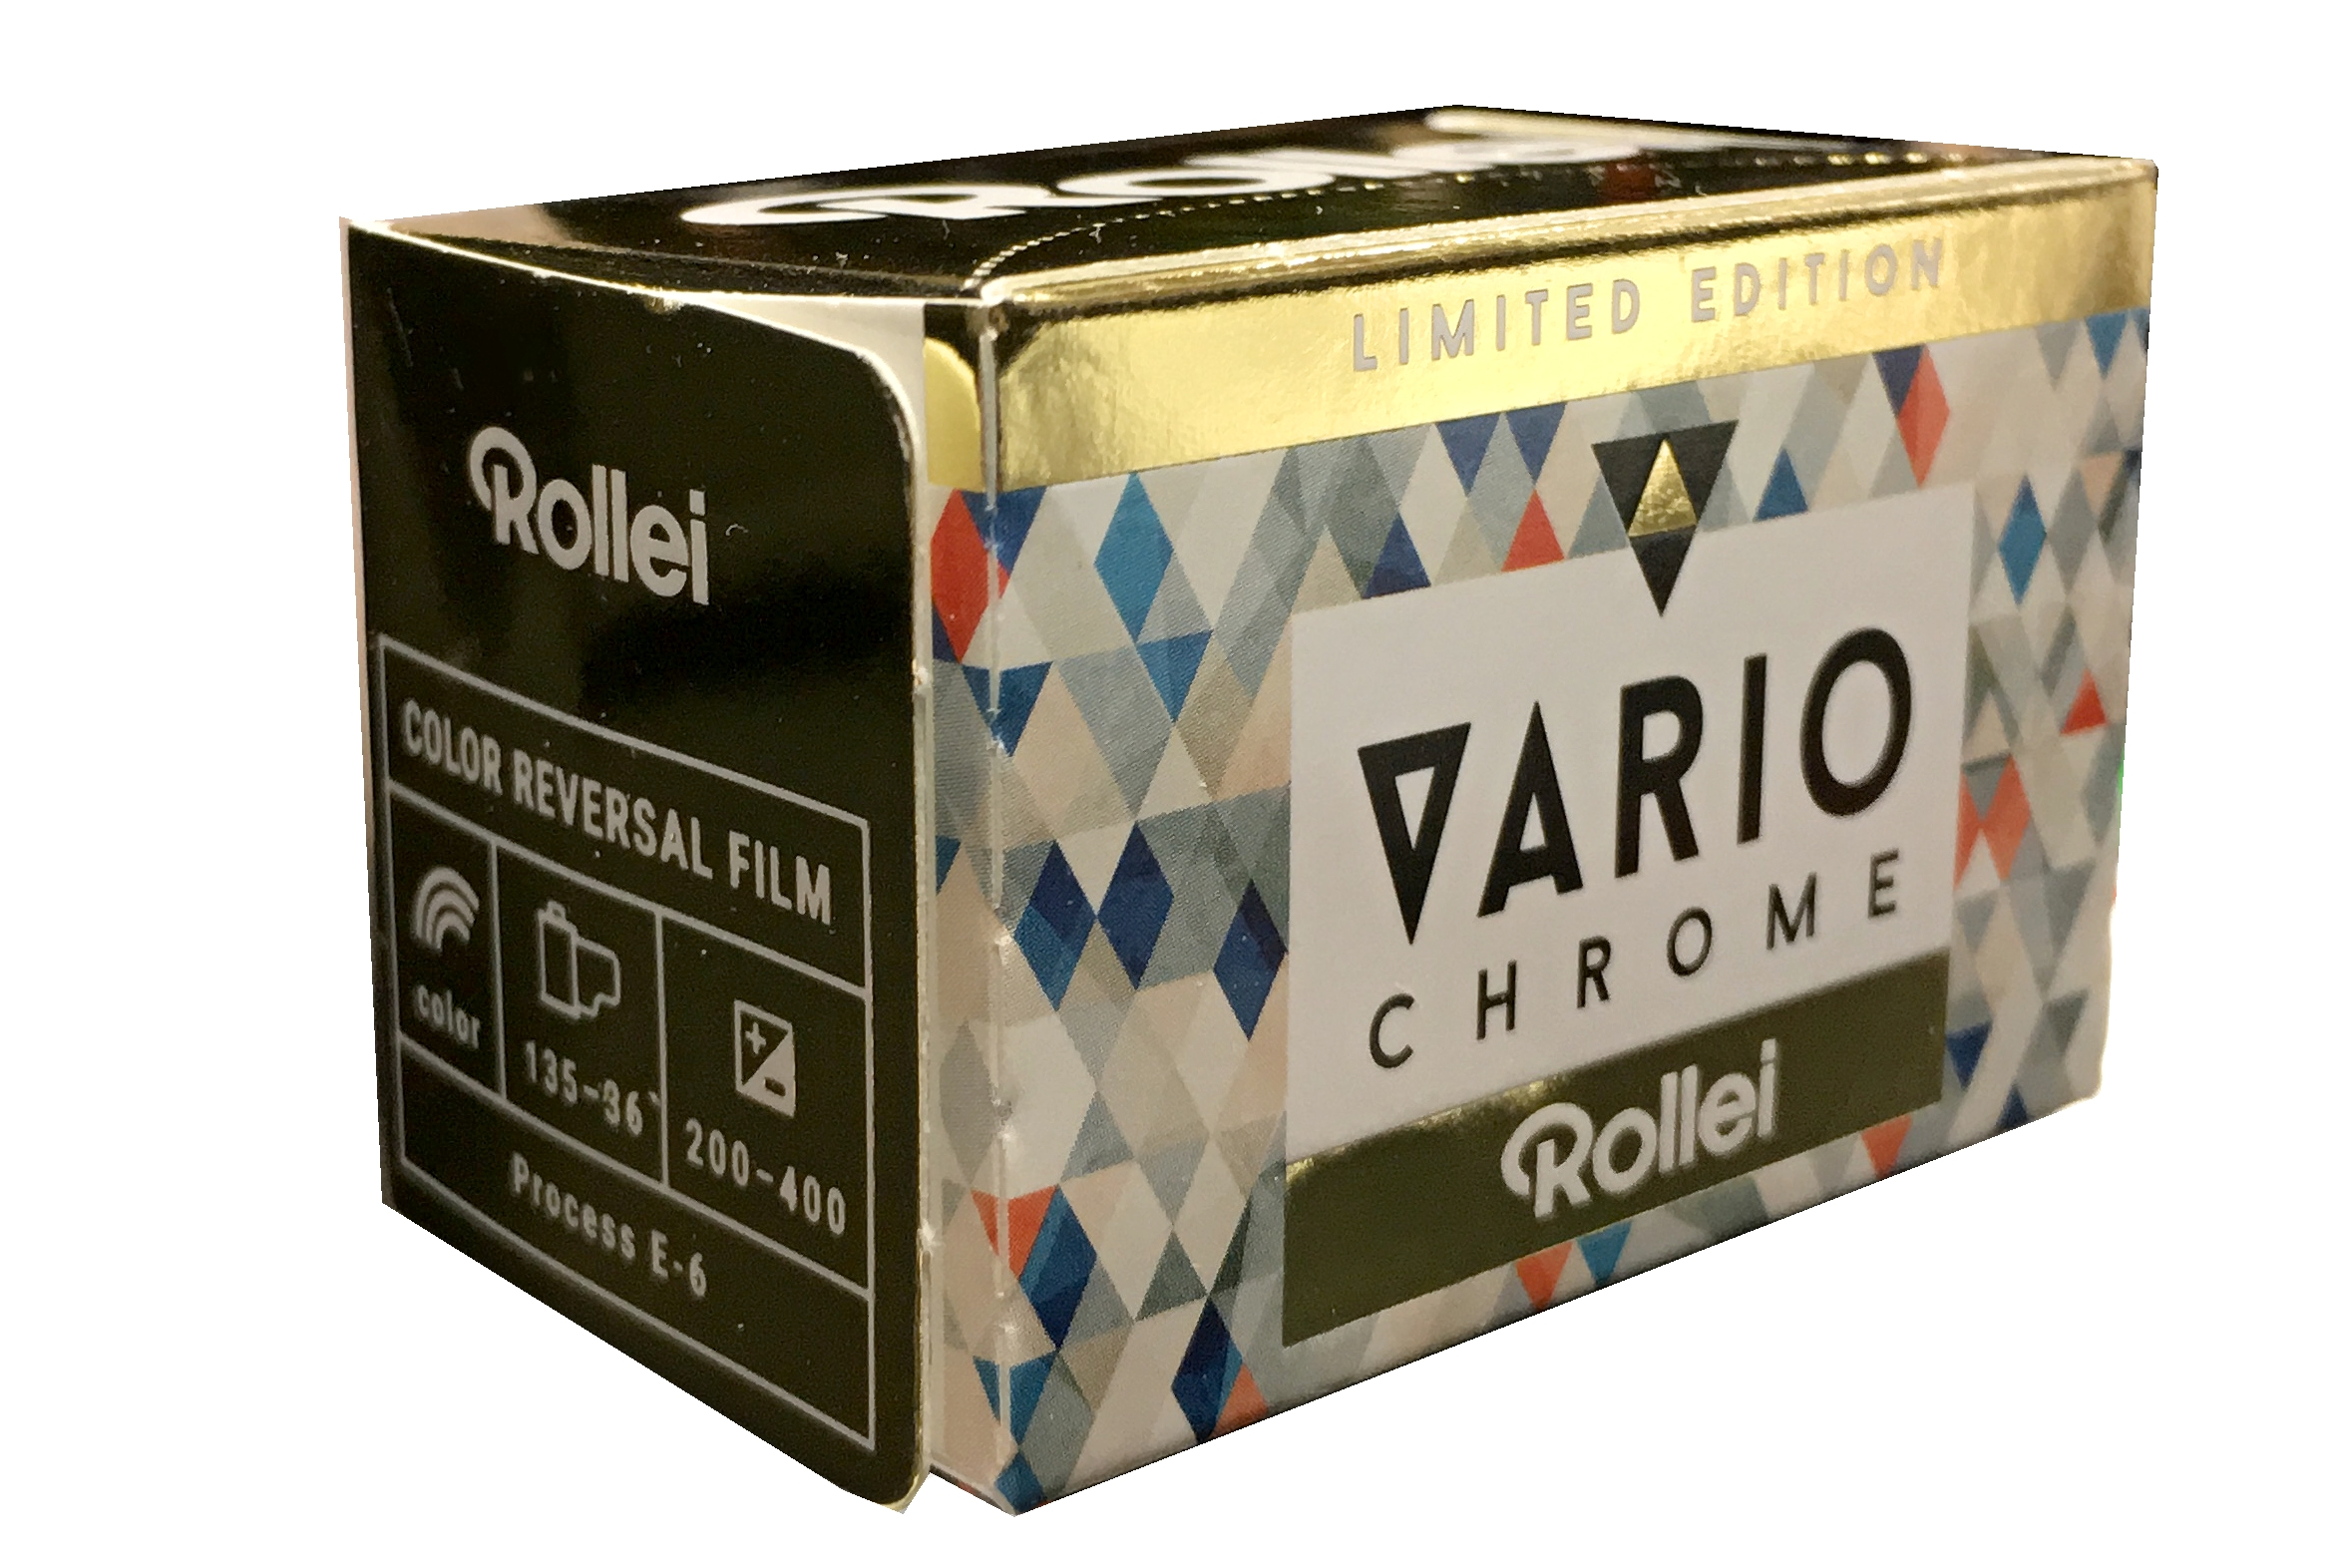 ROLLEI Vario Chrome 200-400/36 Limited Edition